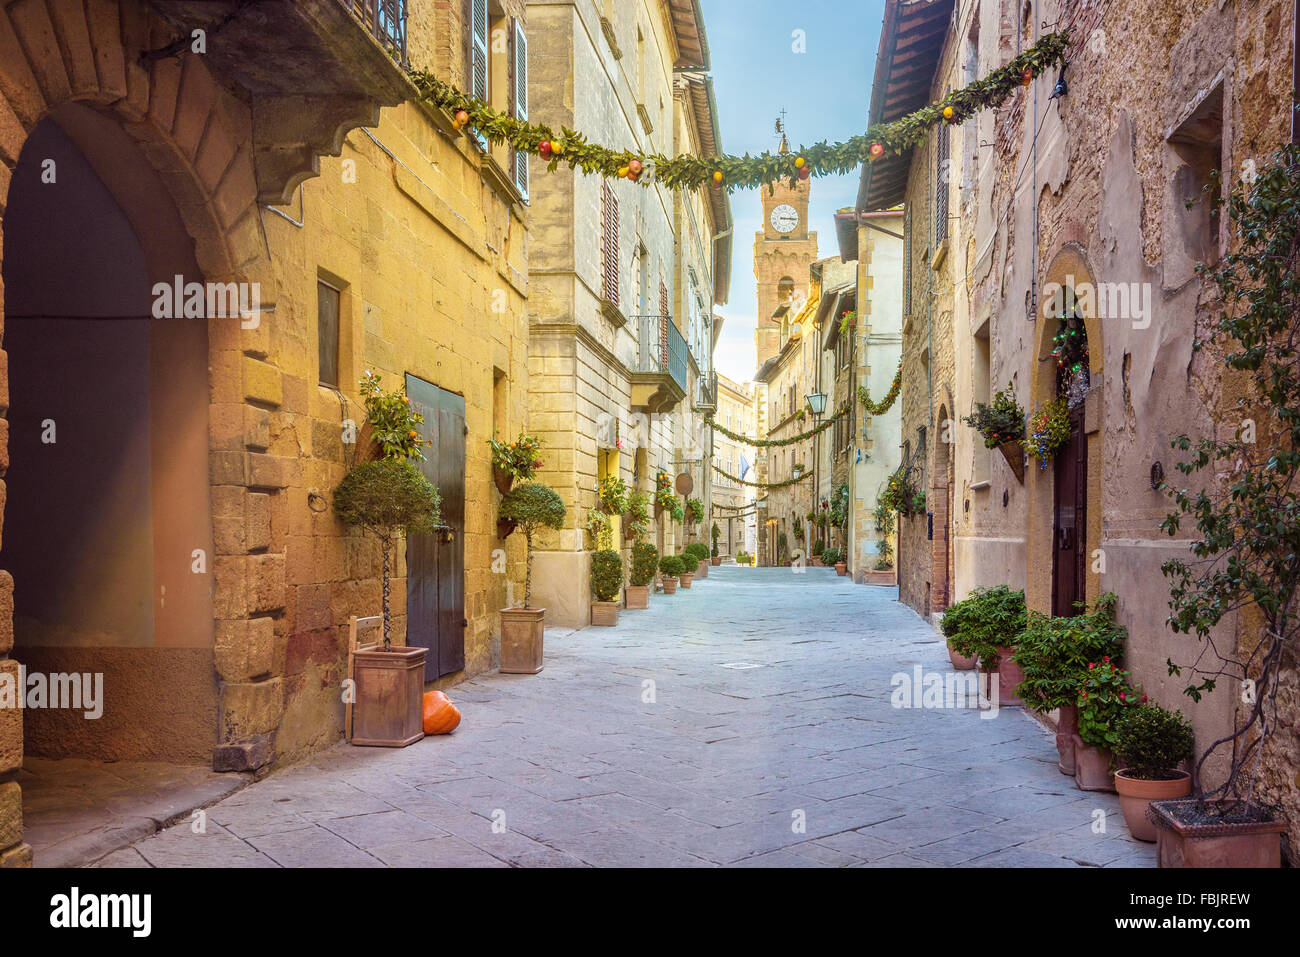 Beautiful places in the magical tiny town Stock Photo